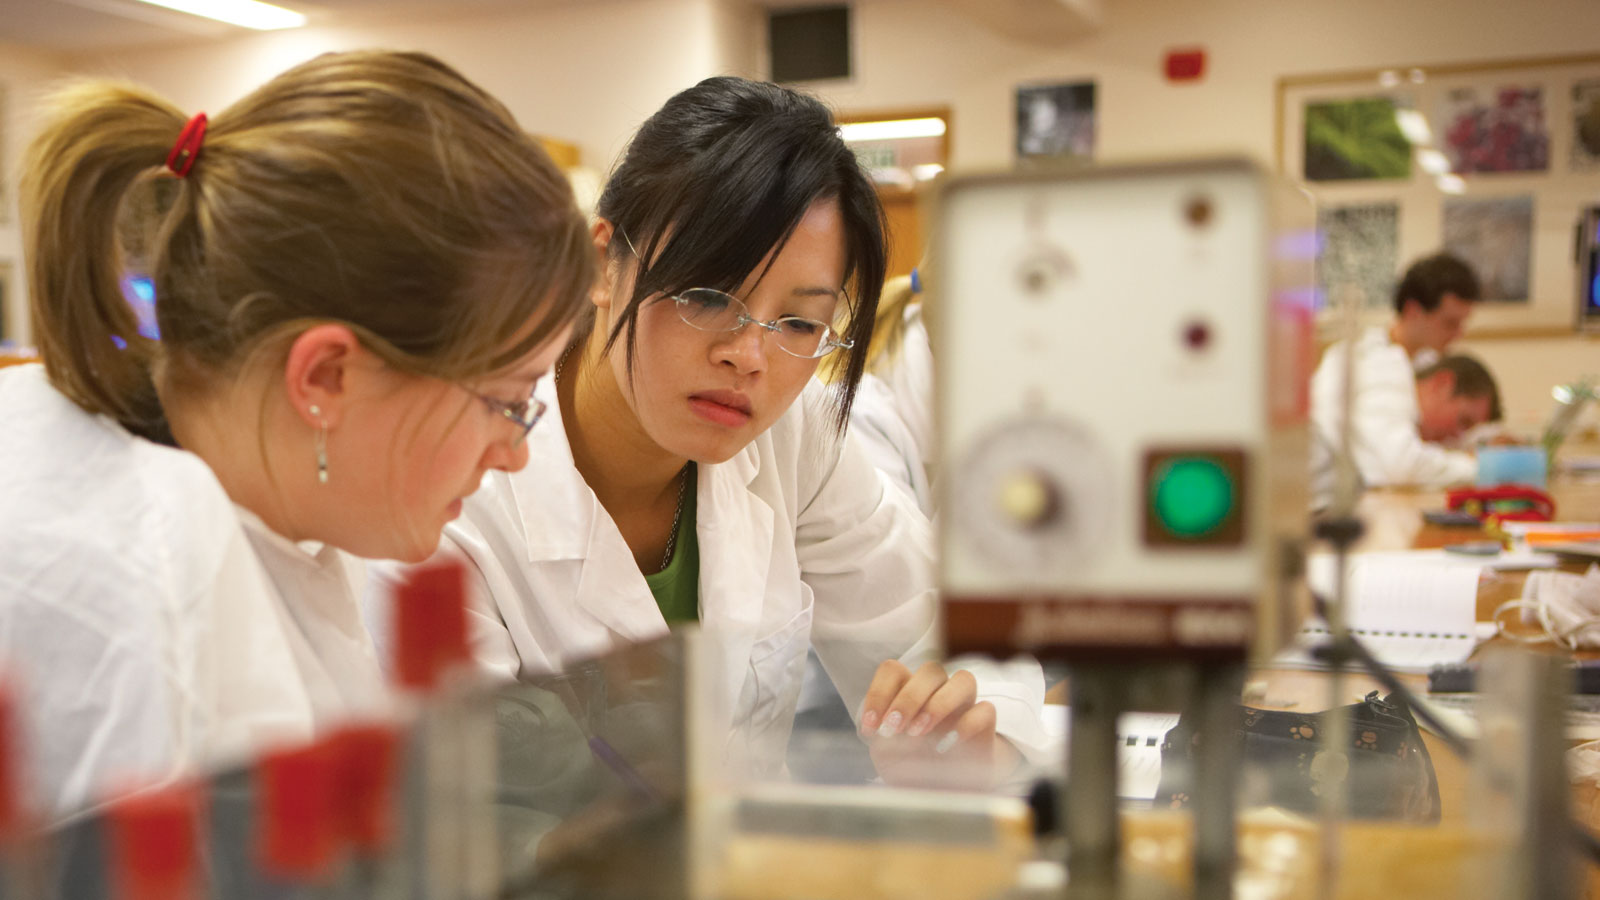 Two female students are working together in a lab, and wear white lab coats.